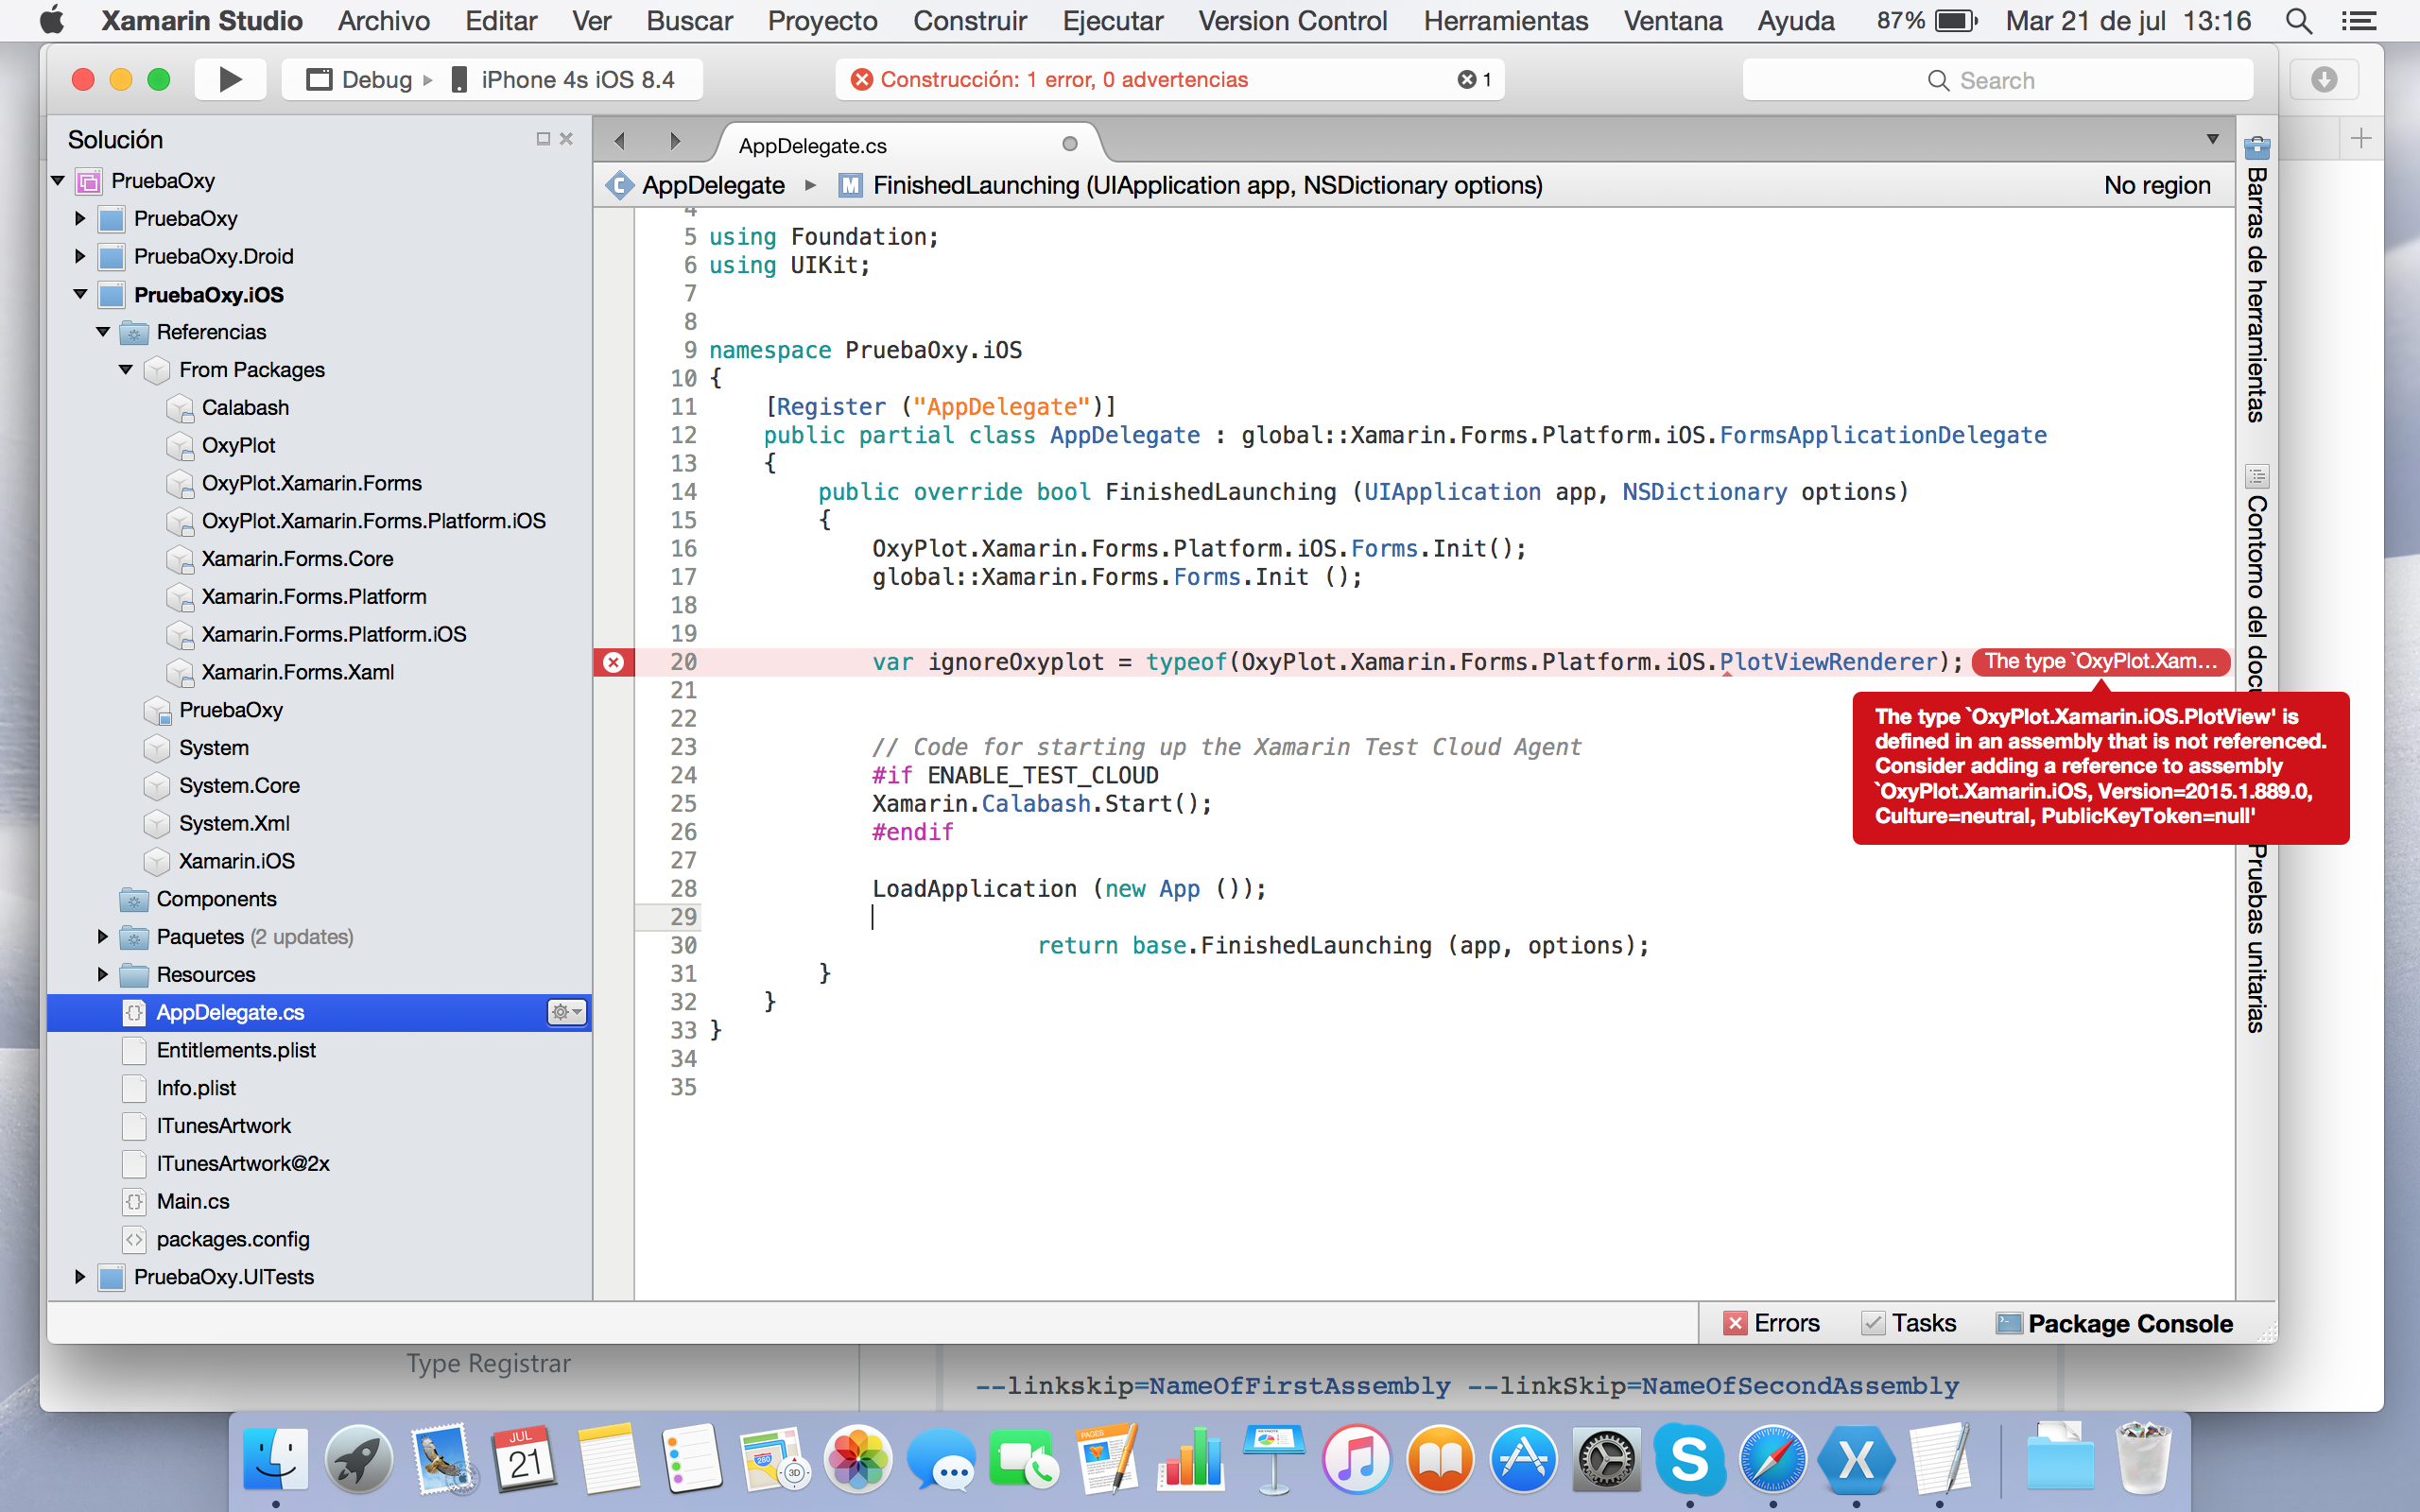 Oxyplot Run Xamarin forms iOS not found ref to OxyPlot Xamarin iOS